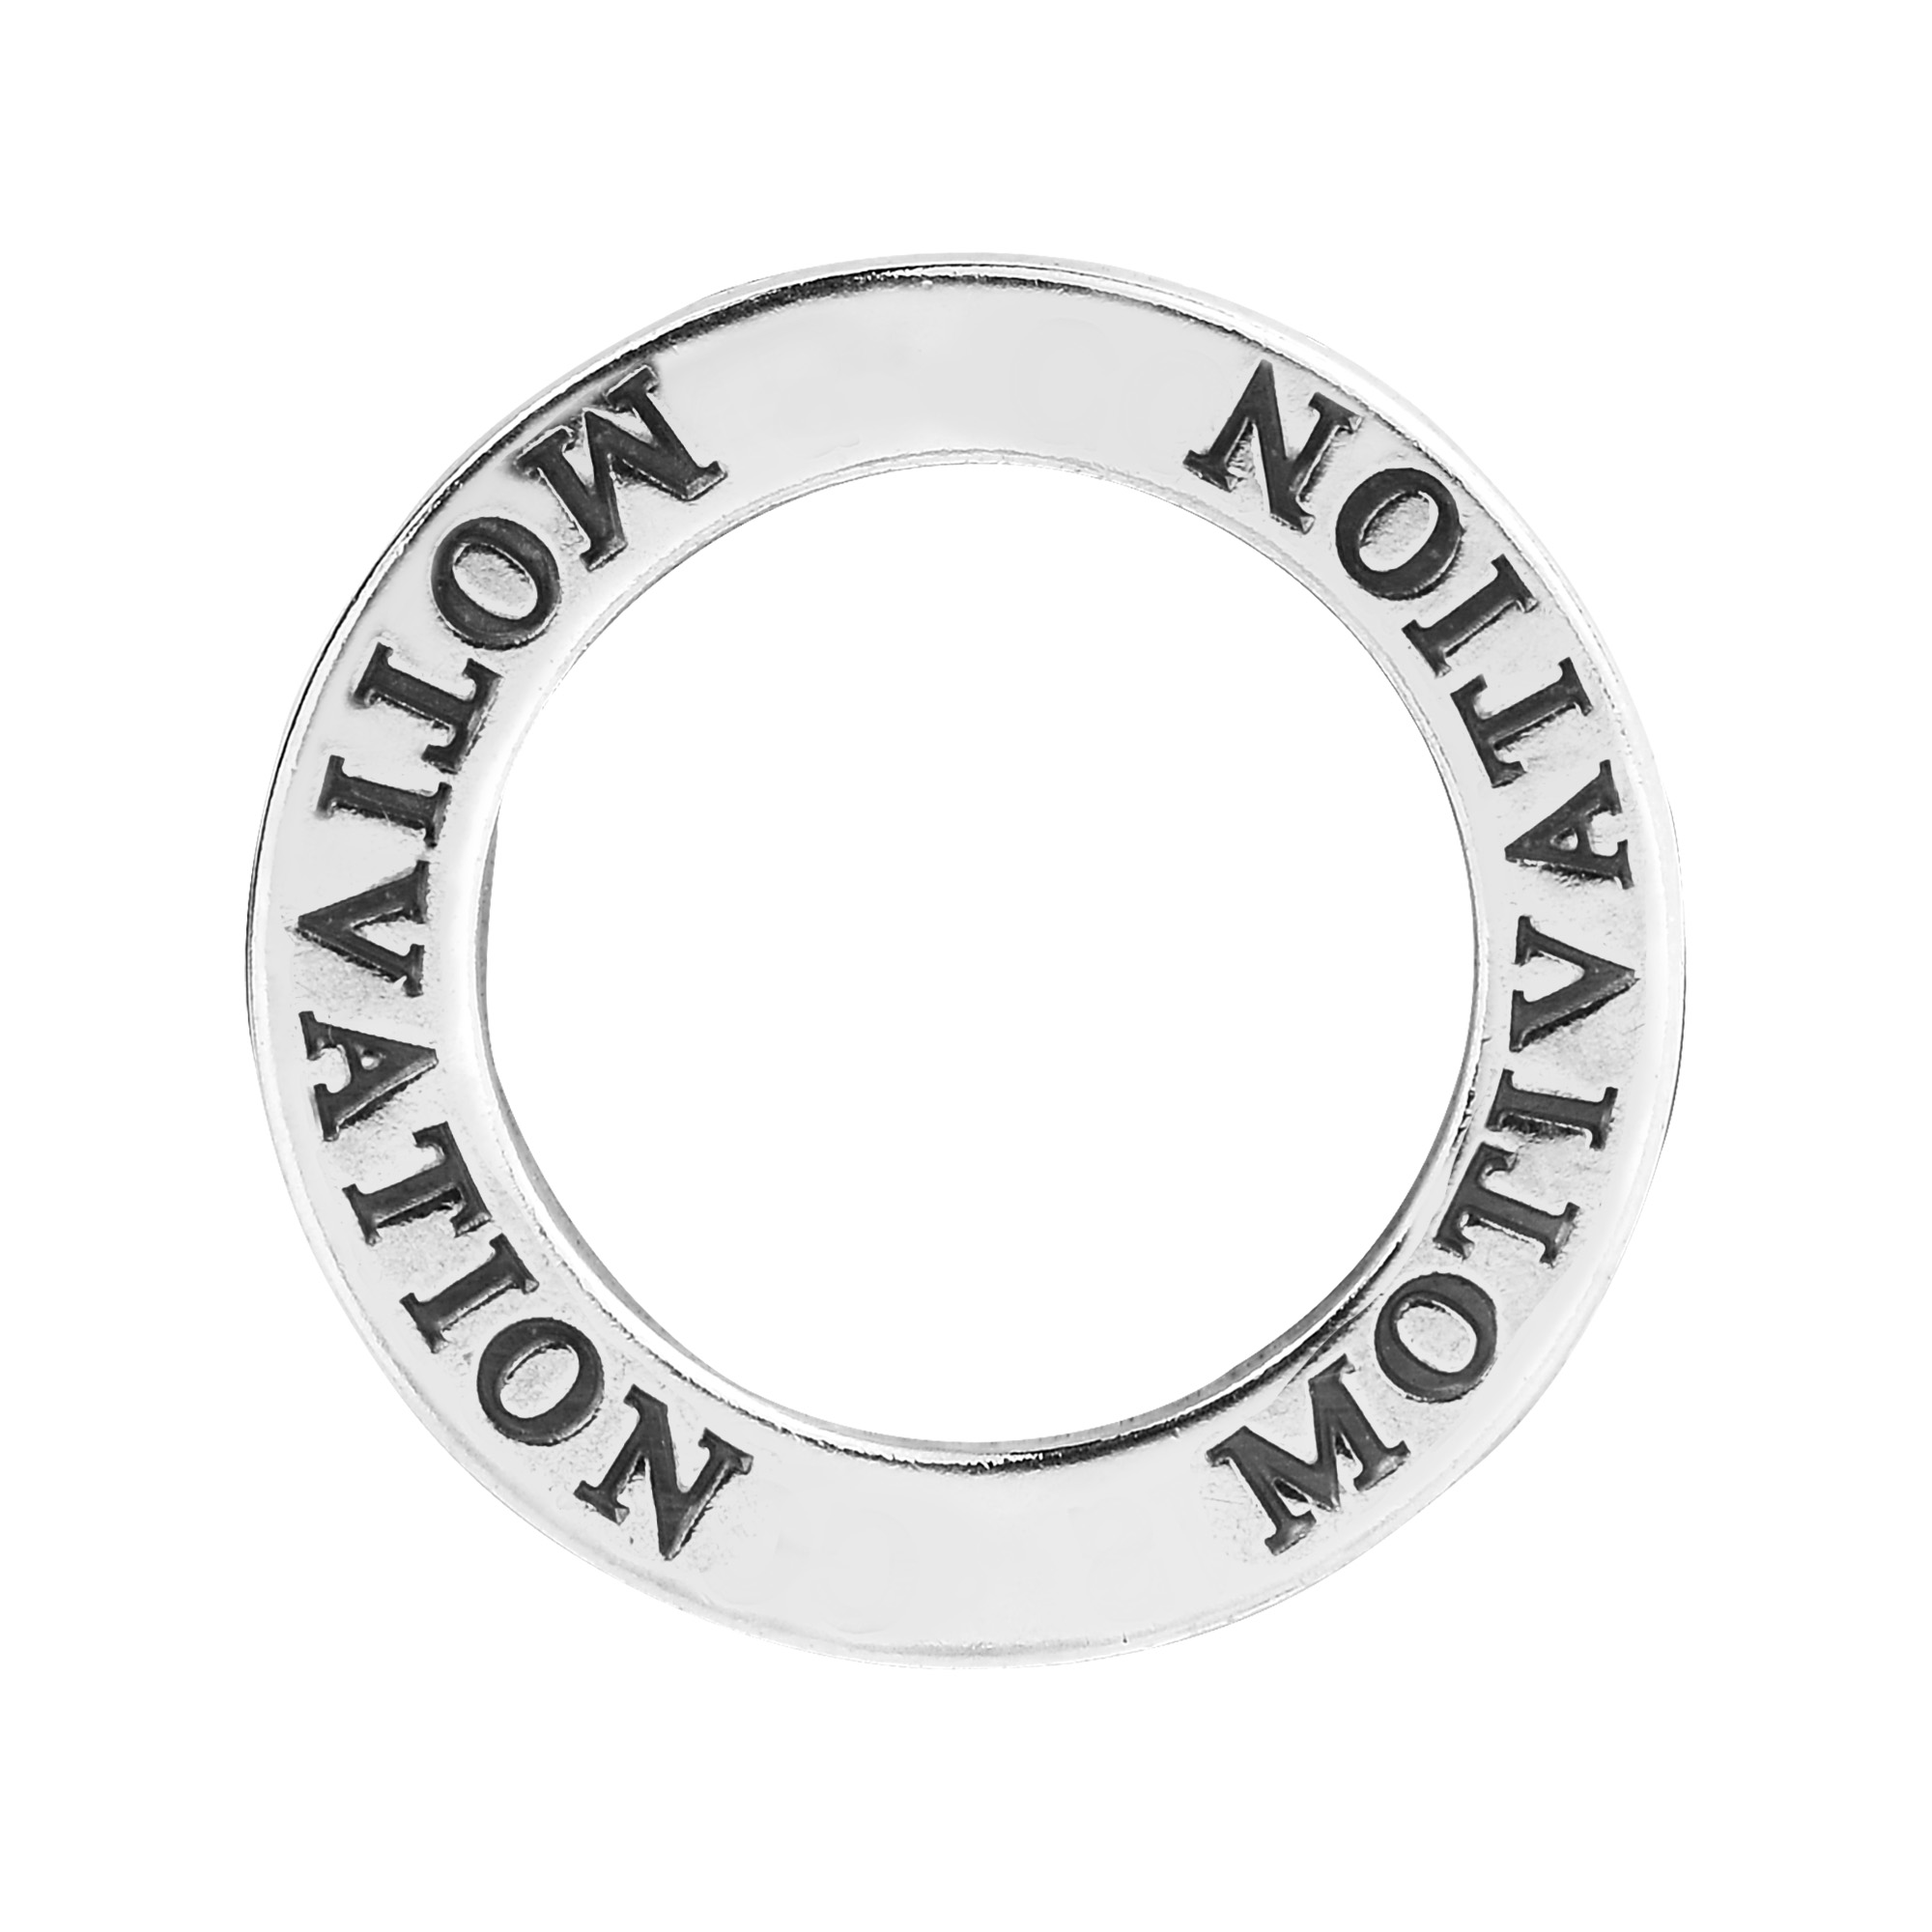 Inspirational word motivation on sterling silver circle pendant these inspirational pendants feature a single word that can carry a powerful message made from sterling silver these pendants can provide a daily aloadofball Image collections